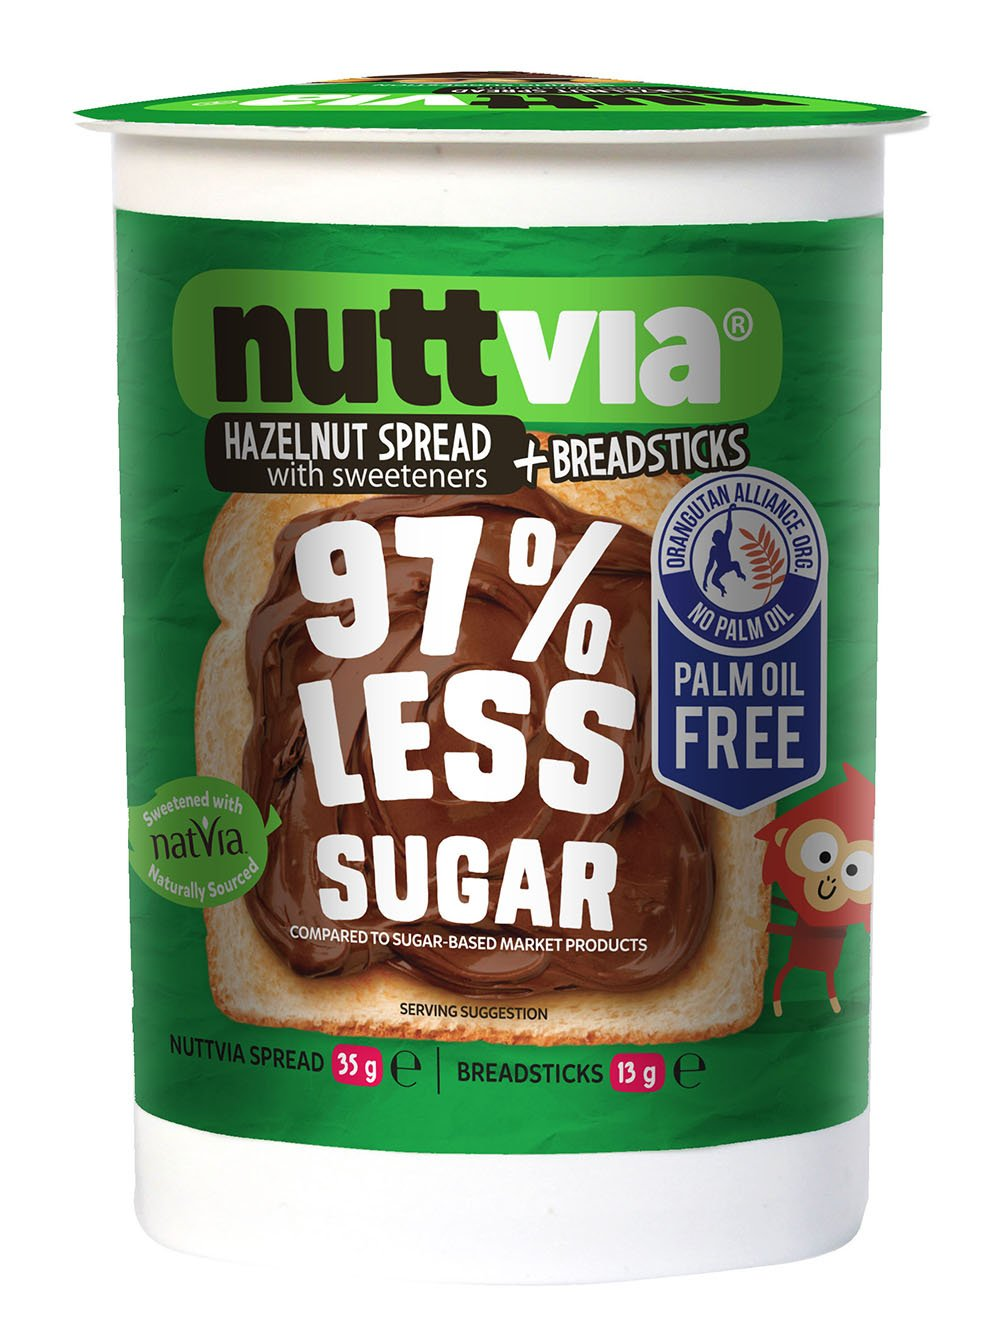 Nuttvia Chocolate and Hazelnut Spread & Breadsticks Snack Pack – Delicious & Palm Oil Free with Natural Sweeteners – 97% Less Sugar (48g)